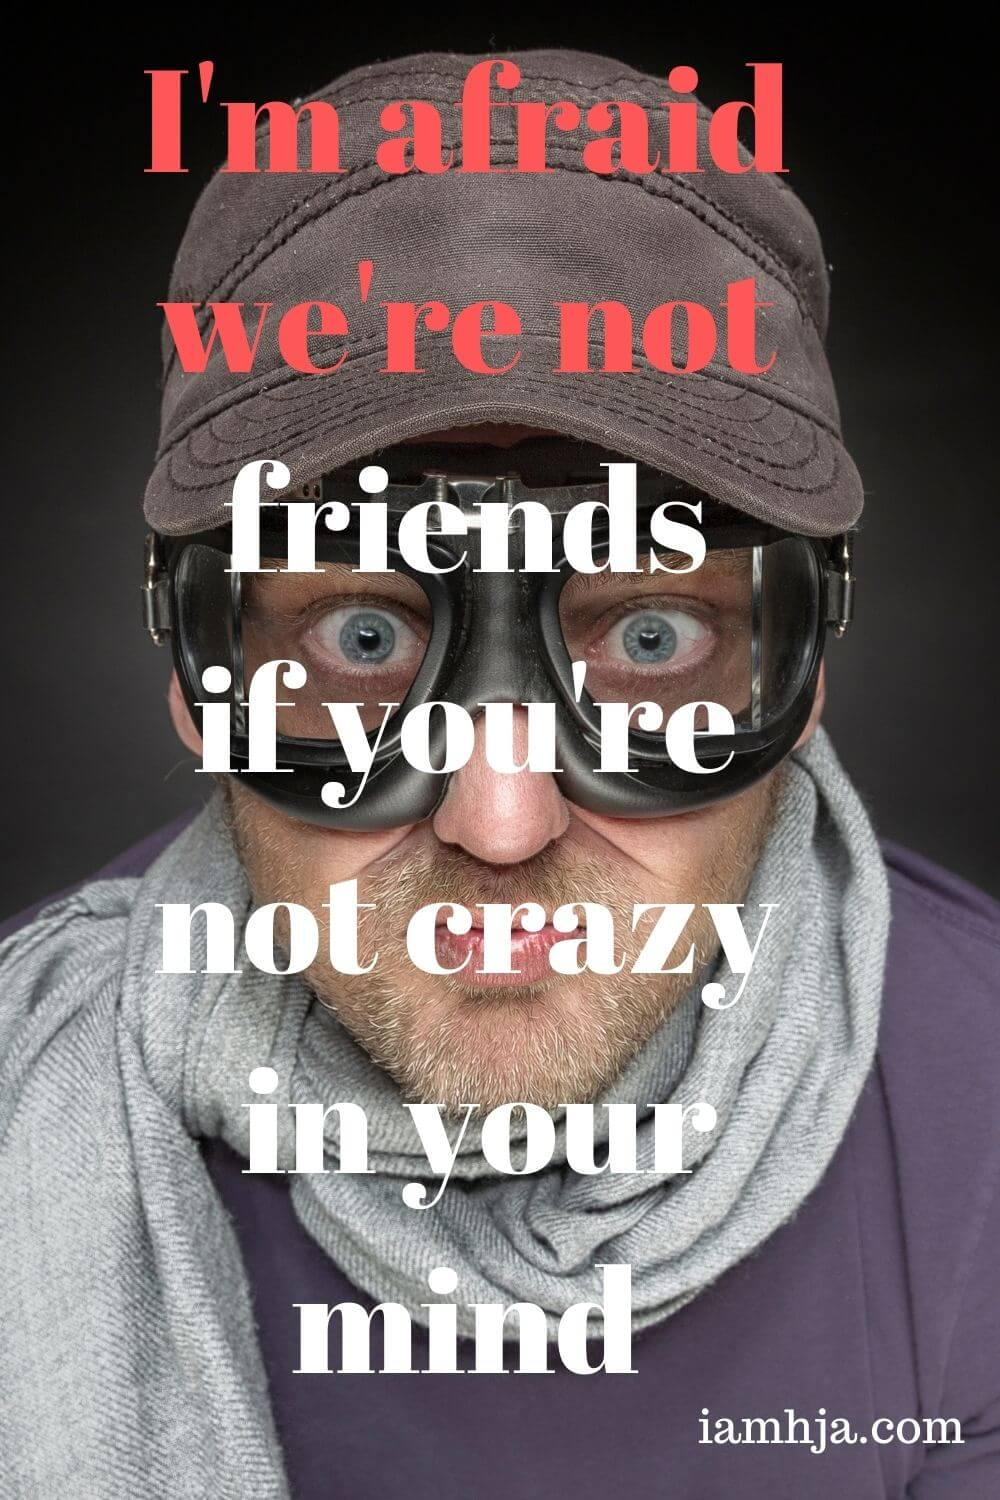 I'm afraid we're not friends if you're not crazy in your mind